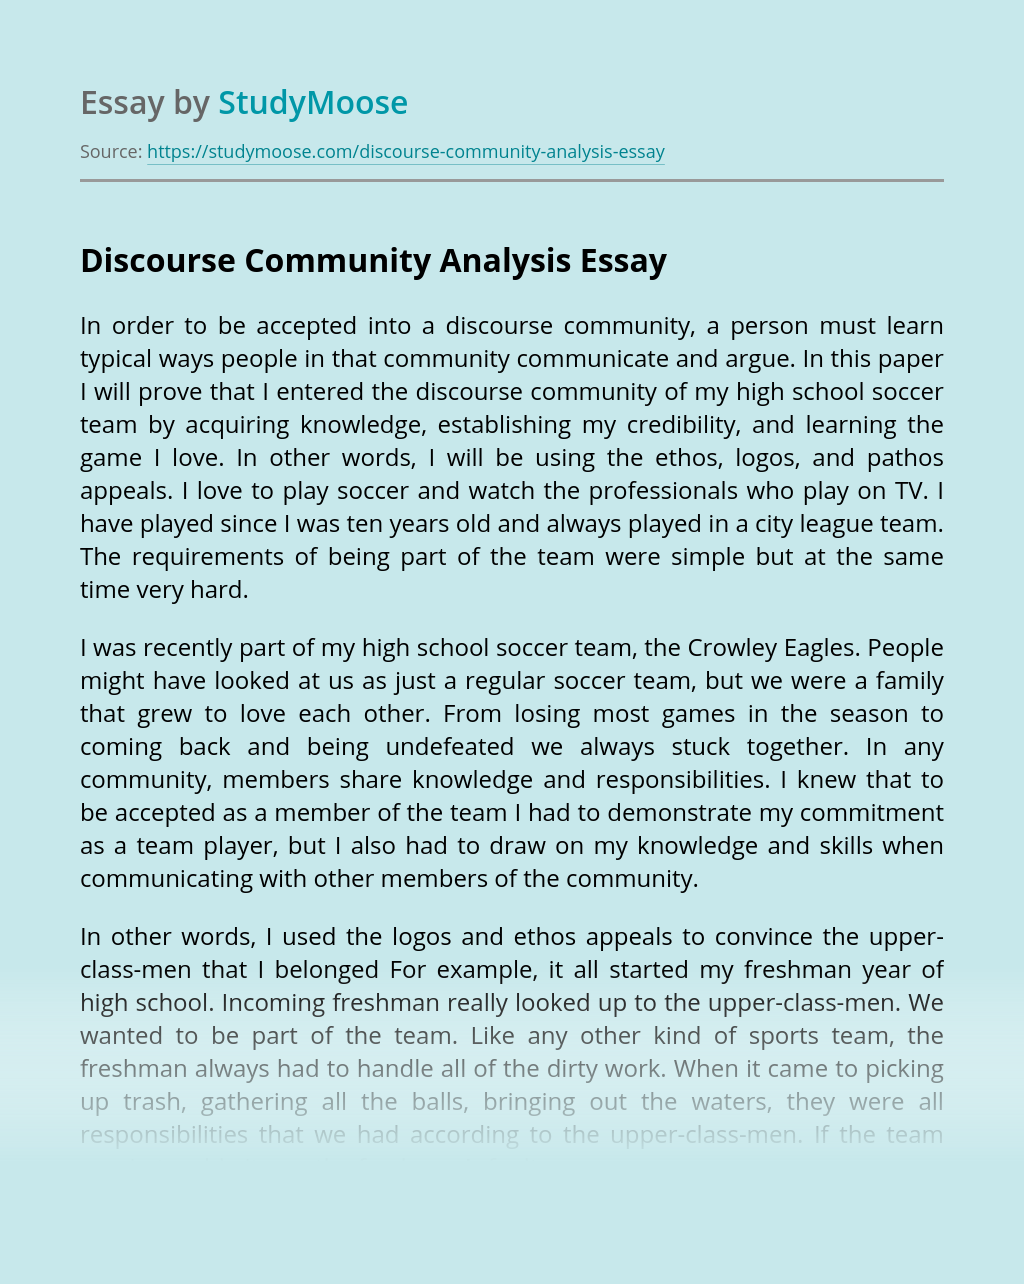 Discourse Community Analysis